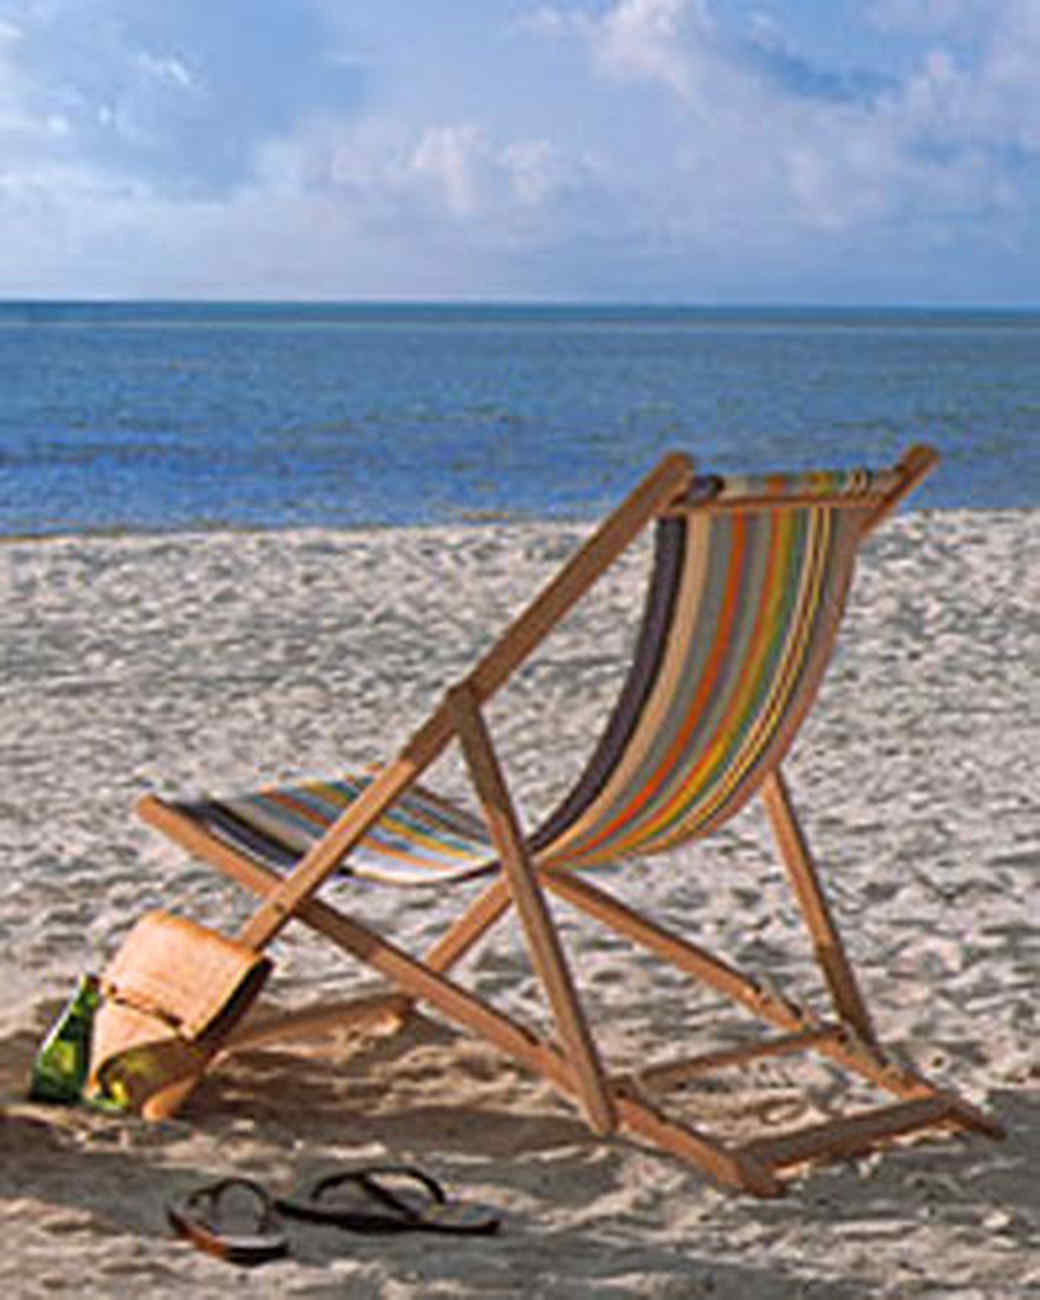 ft_beachchair01_xl.jpg